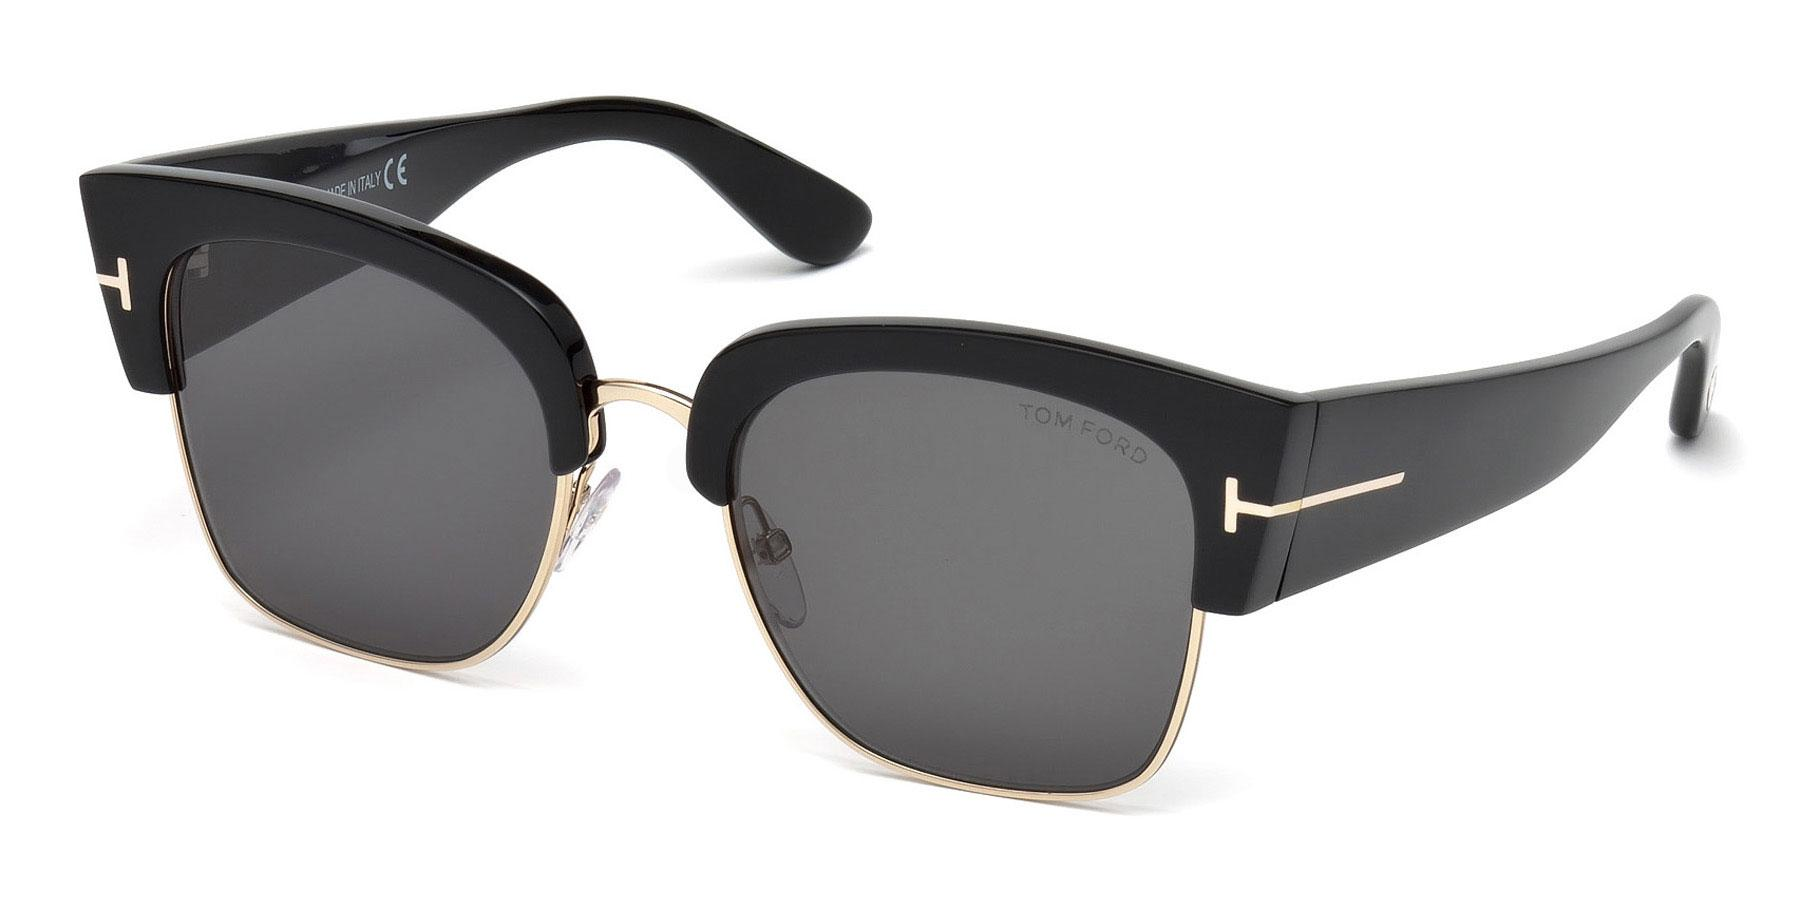 01A FT0554 Sunglasses, Tom Ford